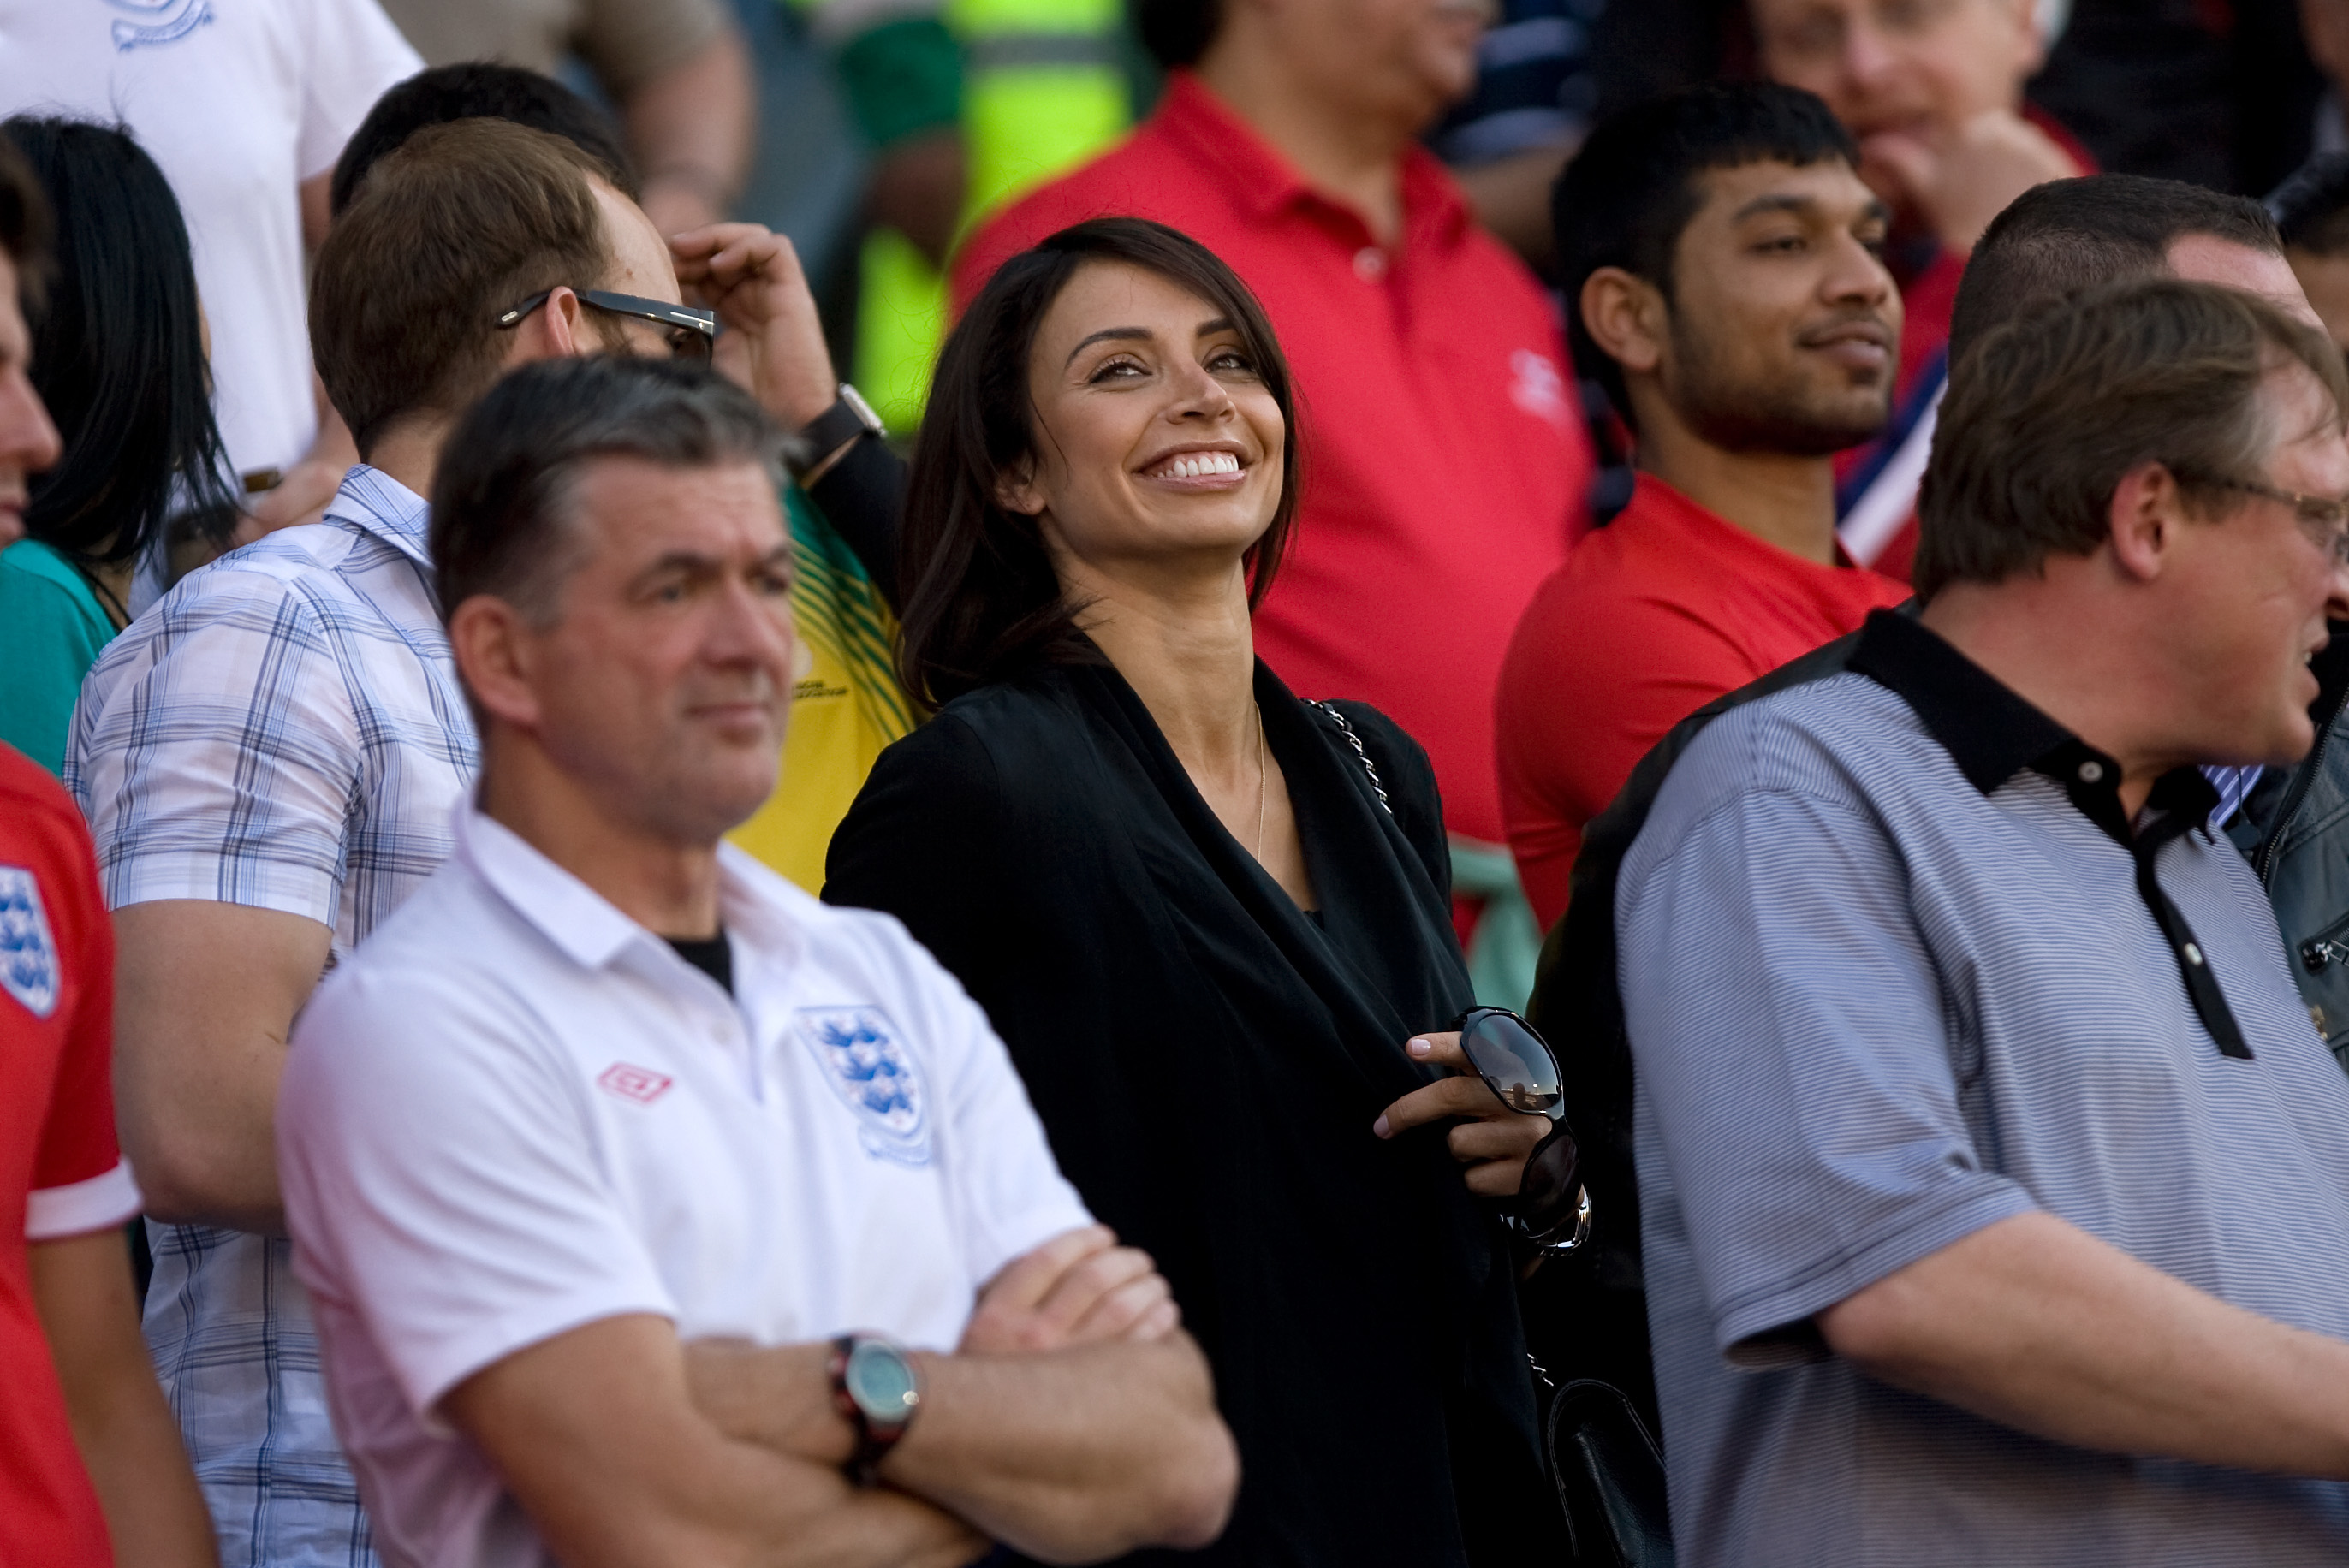 Christine Bleakley?, television celebrity and girlfriend of Frank Lampard of England is all smiles before the match (Photo by AMA/Corbis via Getty Images)